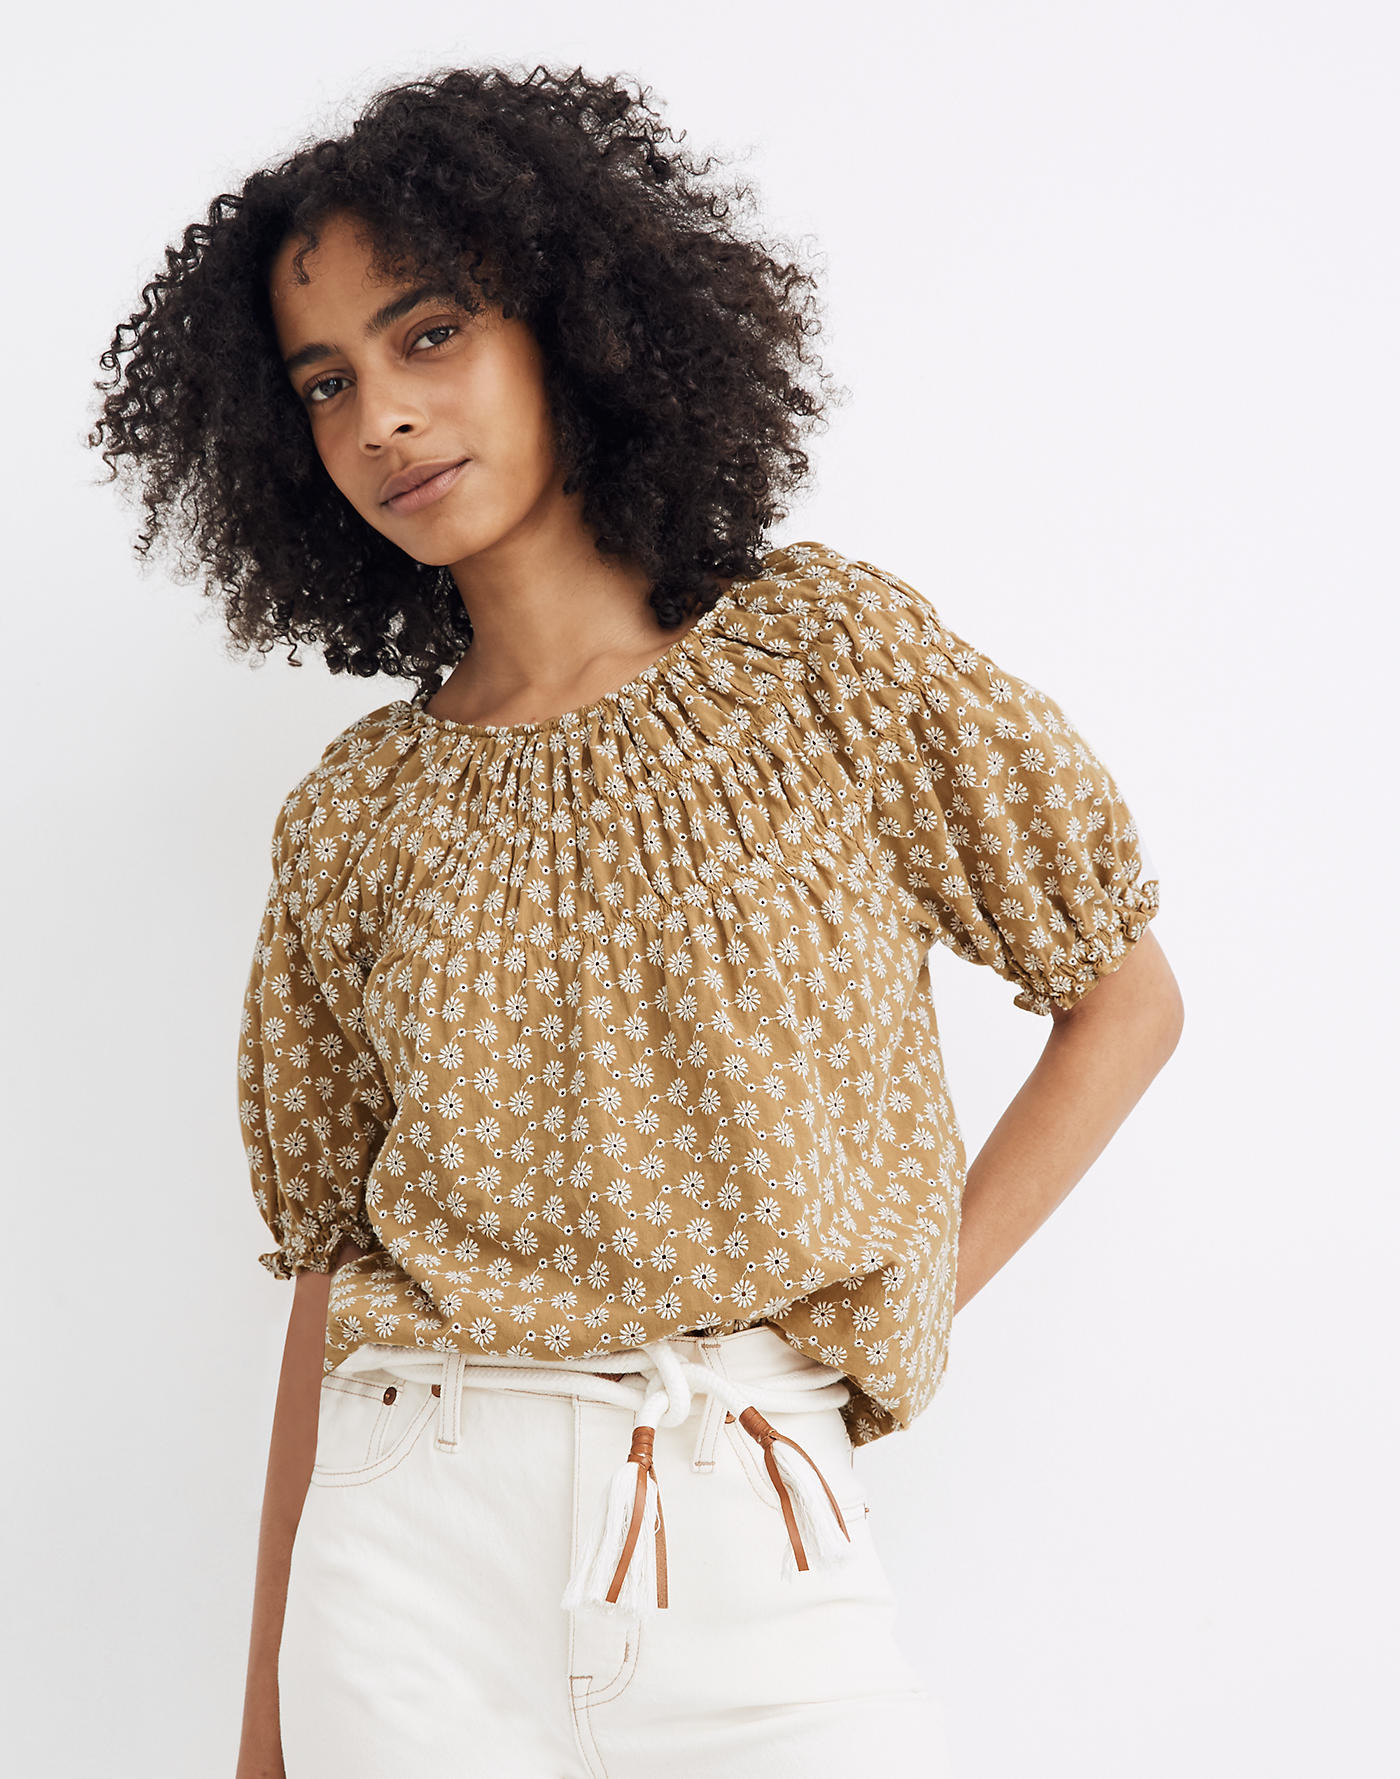 Model wearing the puff-sleeve top with elastic around the short sleeves and a daisy embroidered pattern all over